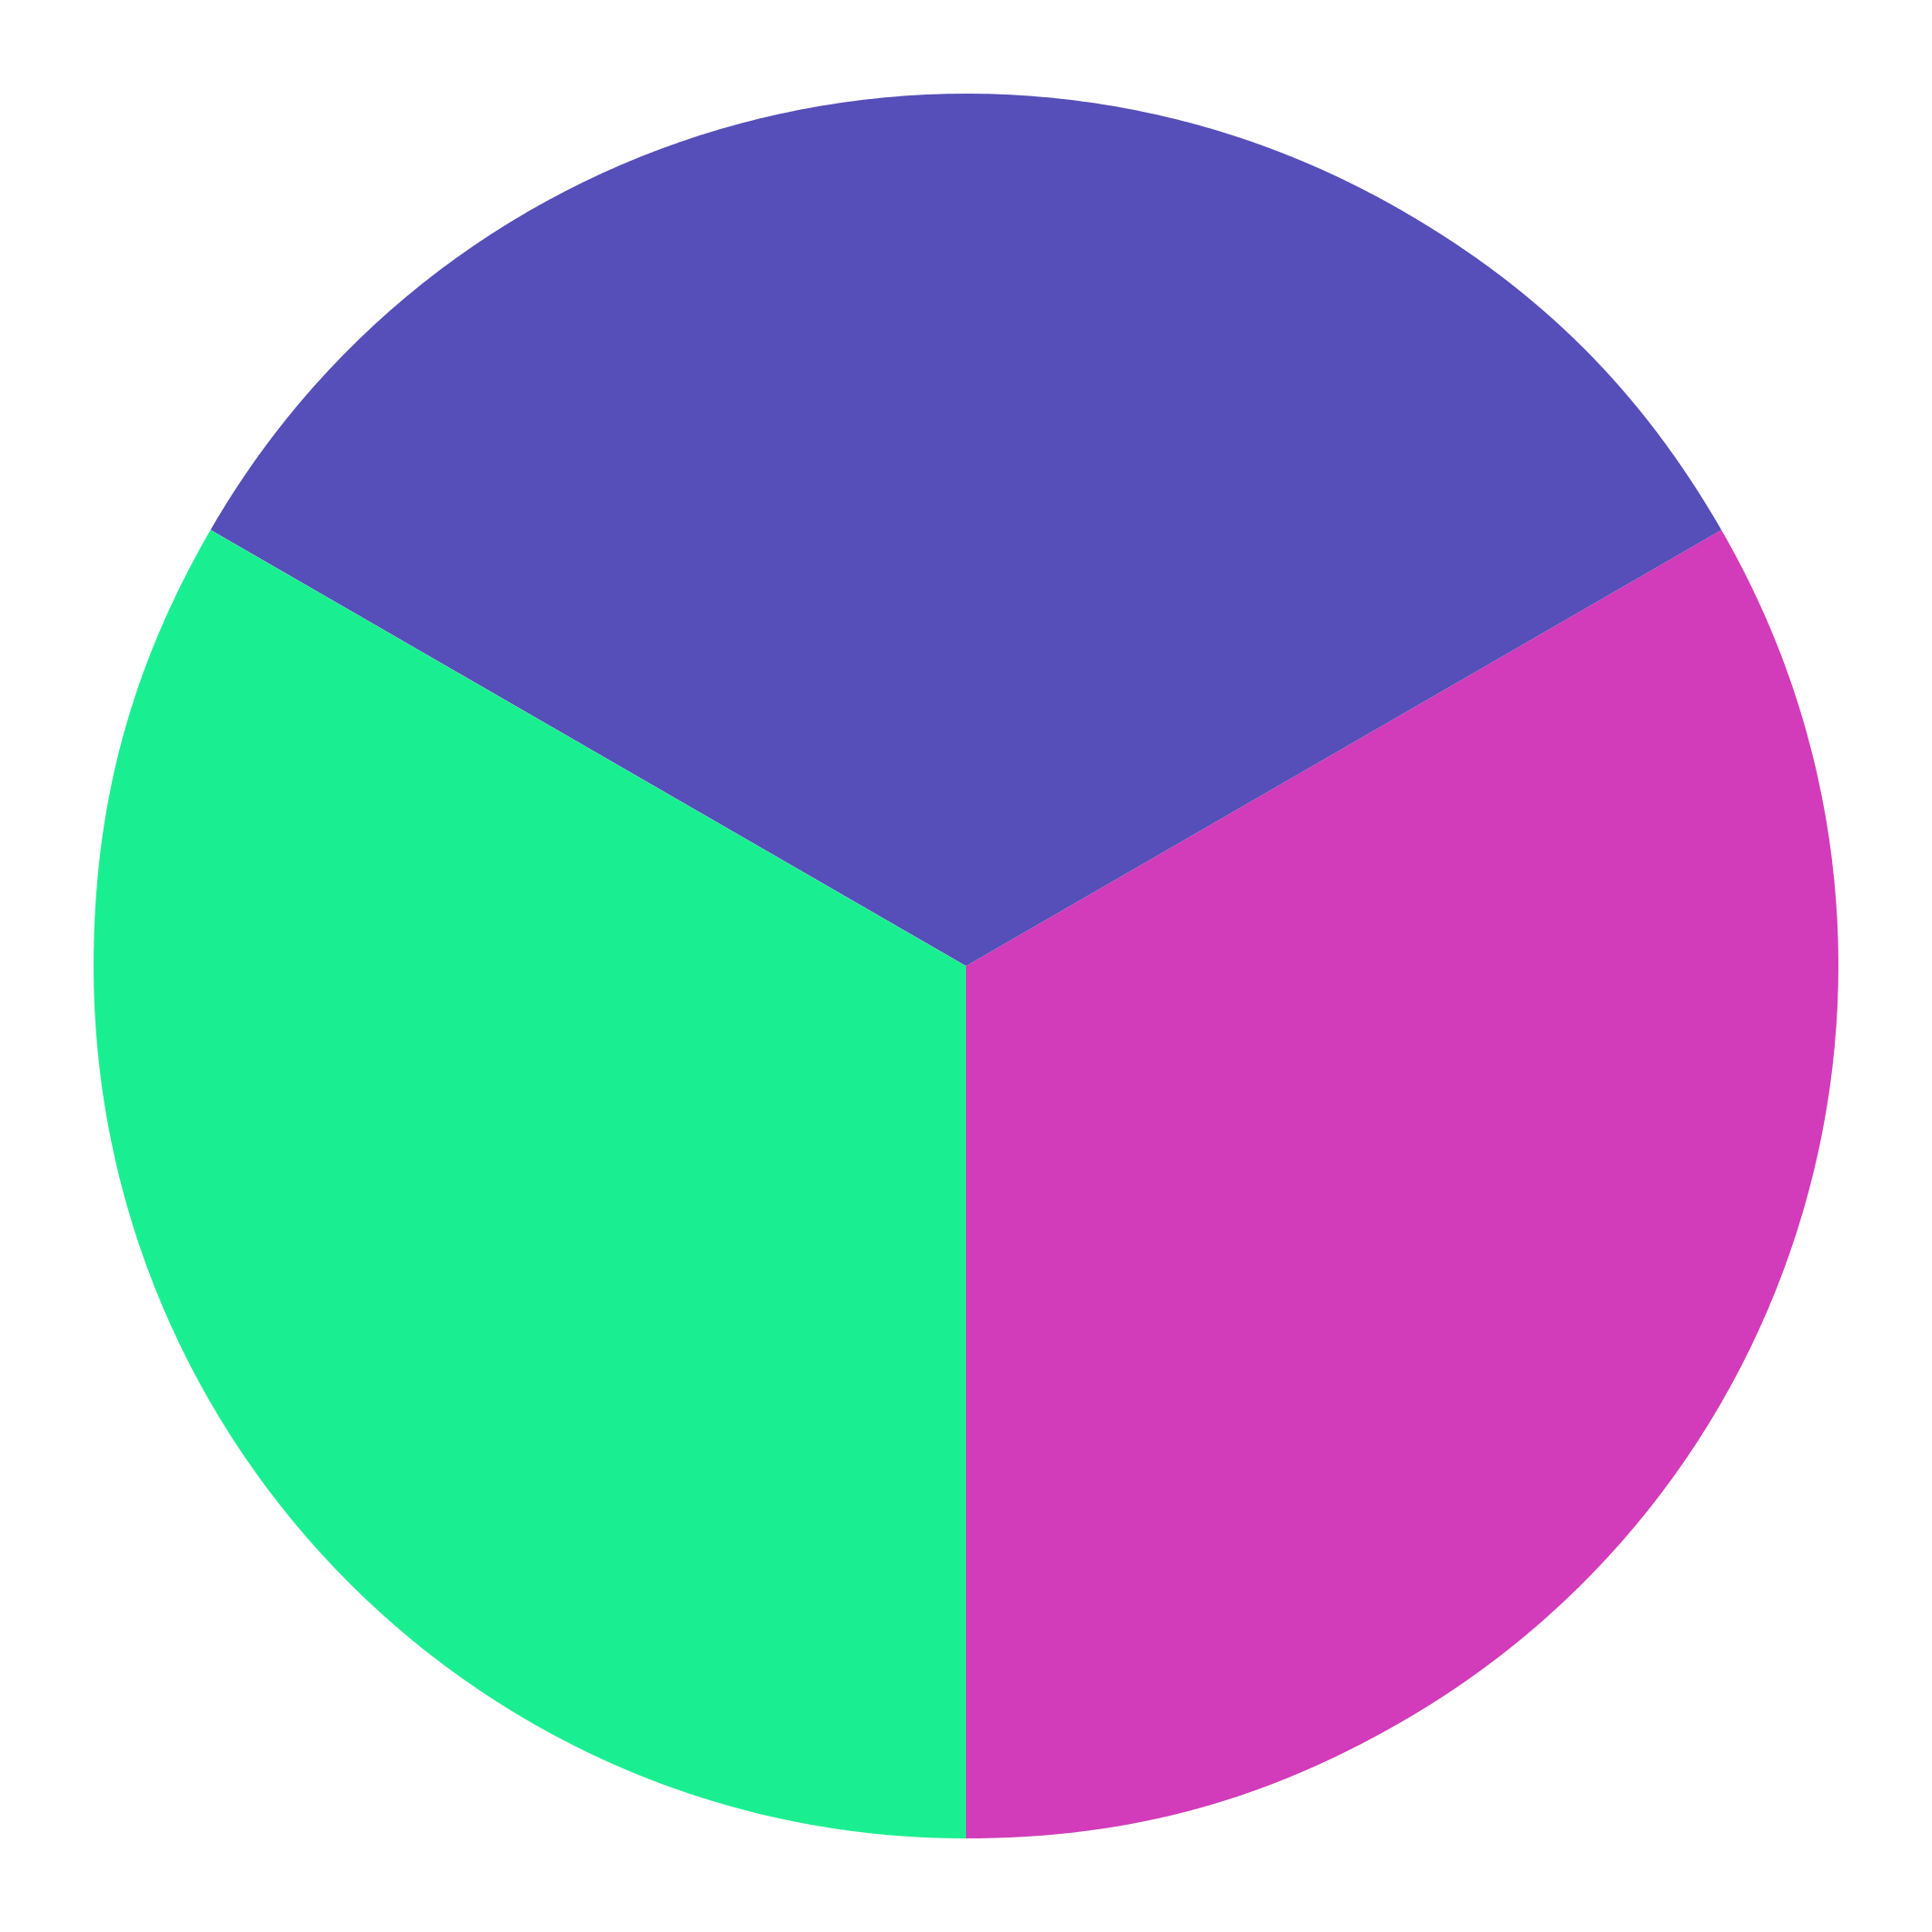 pie charts png